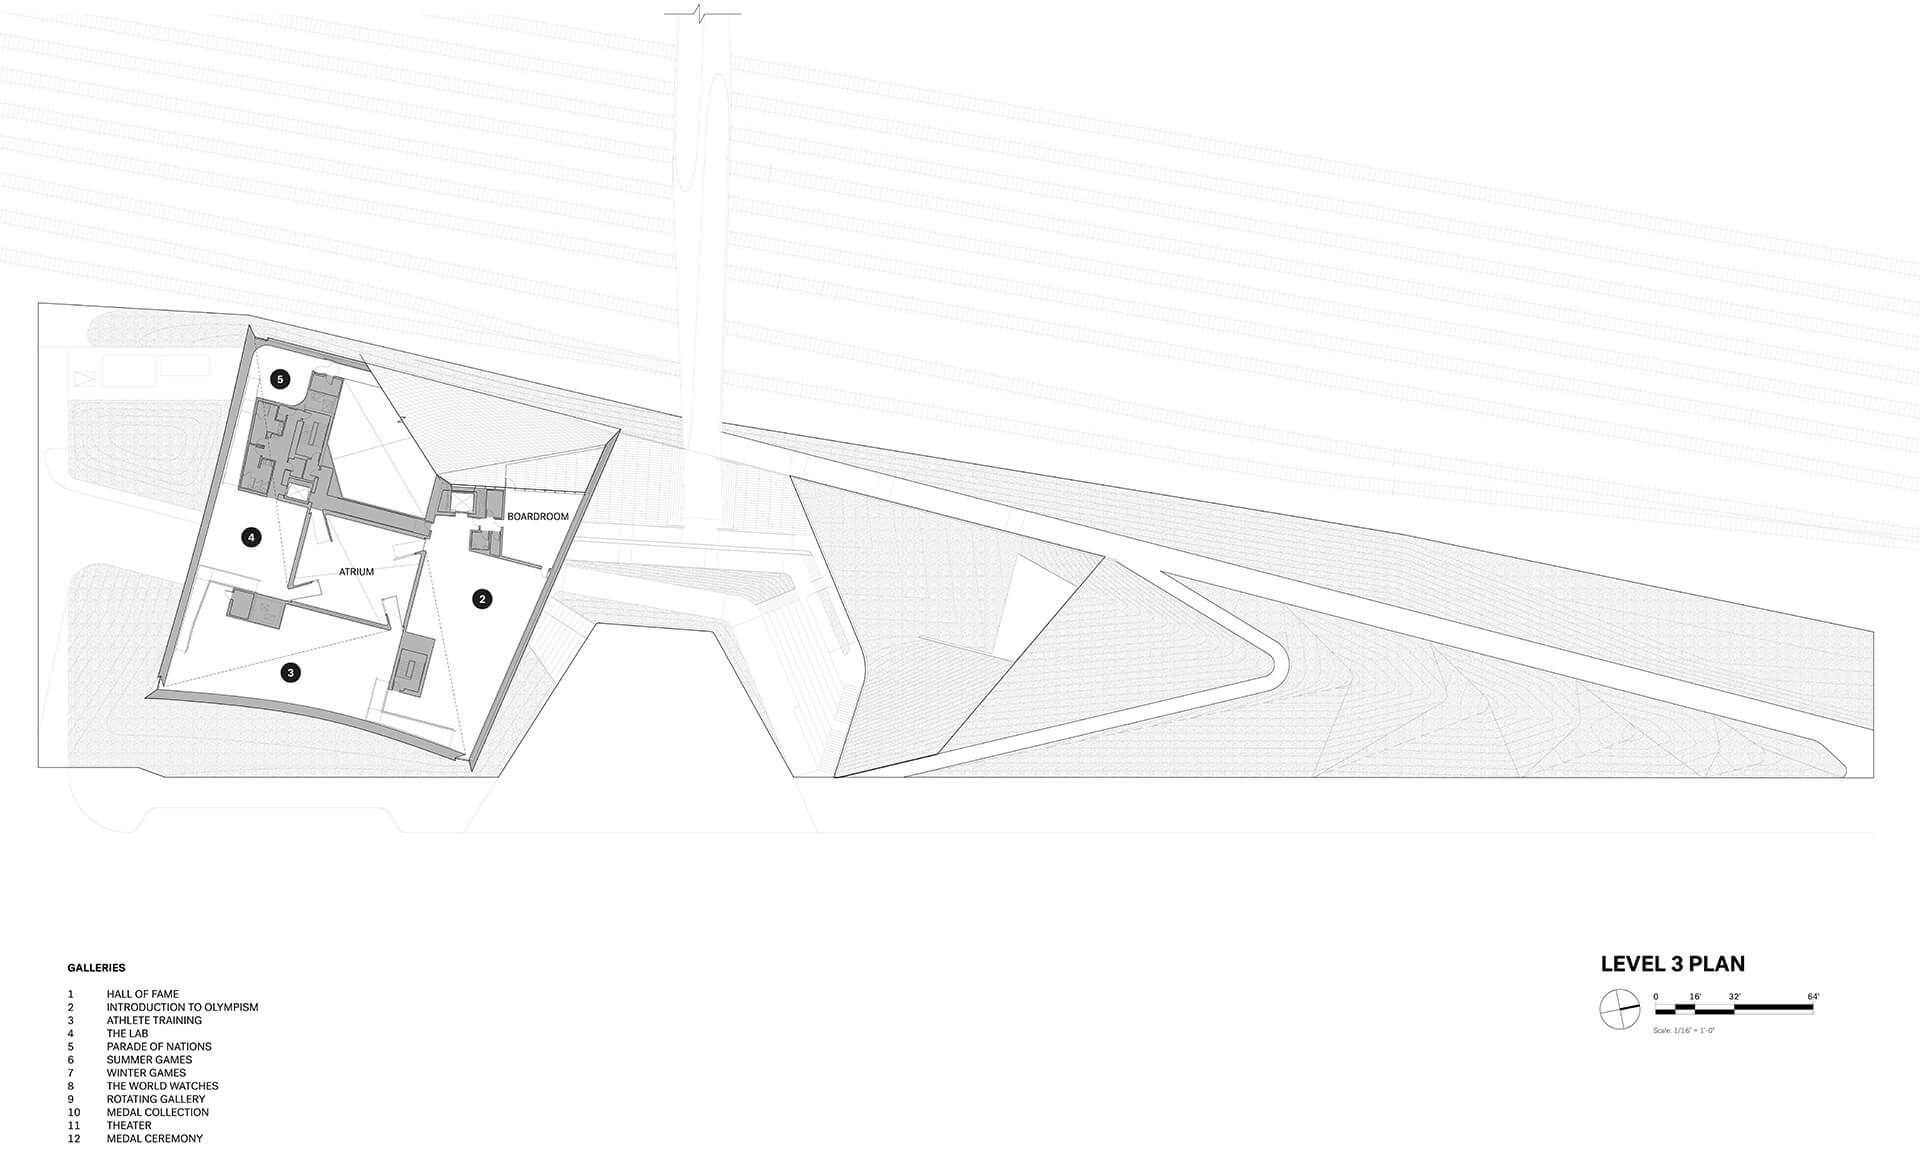 Level 3 Floorplan, USOPM | United States Olympic and Paralympic Museum | Diller Scofidio + Renfro | STIRworld